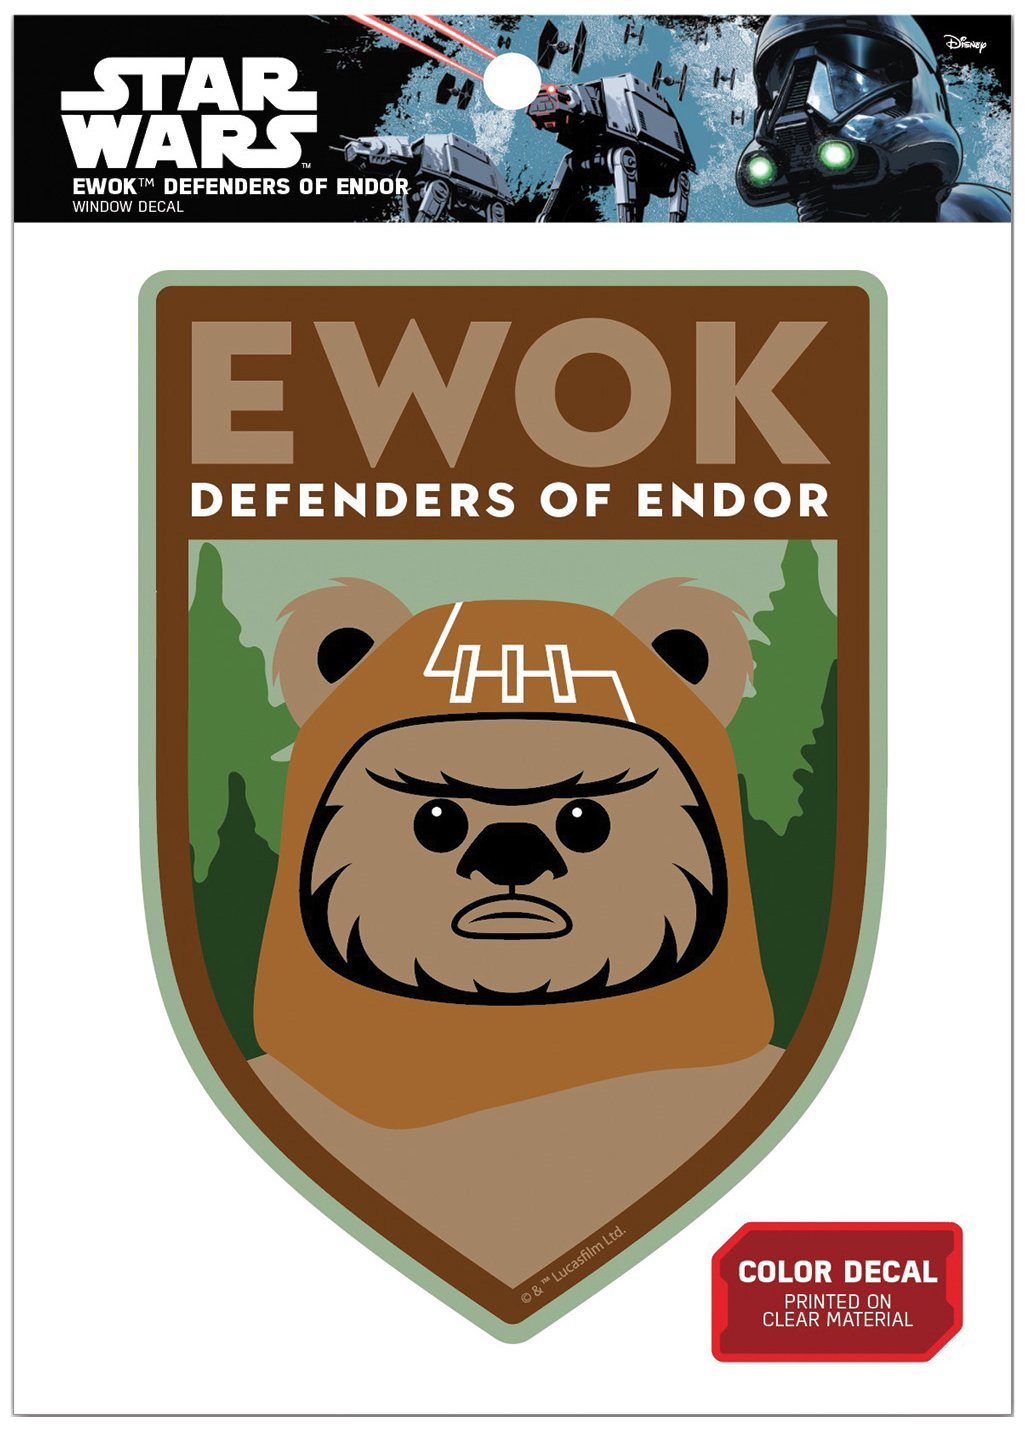 Star Wars FW1155 Ewok Defenders of Endor Vinyl Window Decal